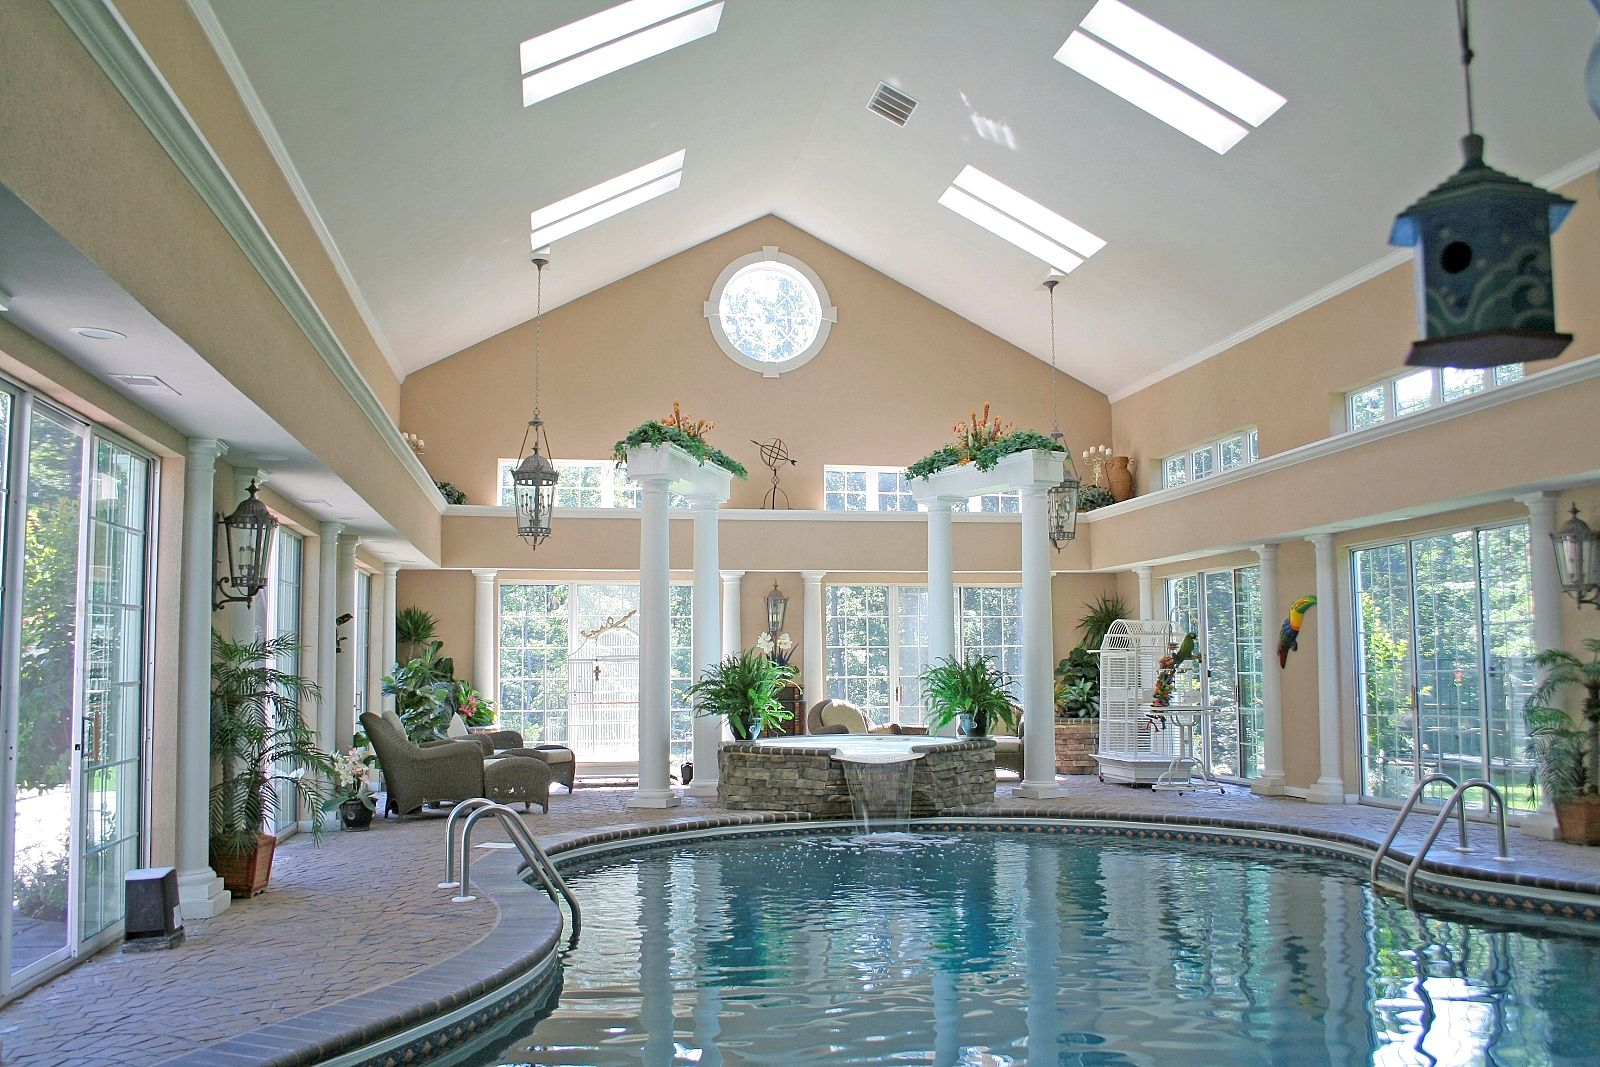 Interior splendid spacious white cream indoor pool Mansion house designs